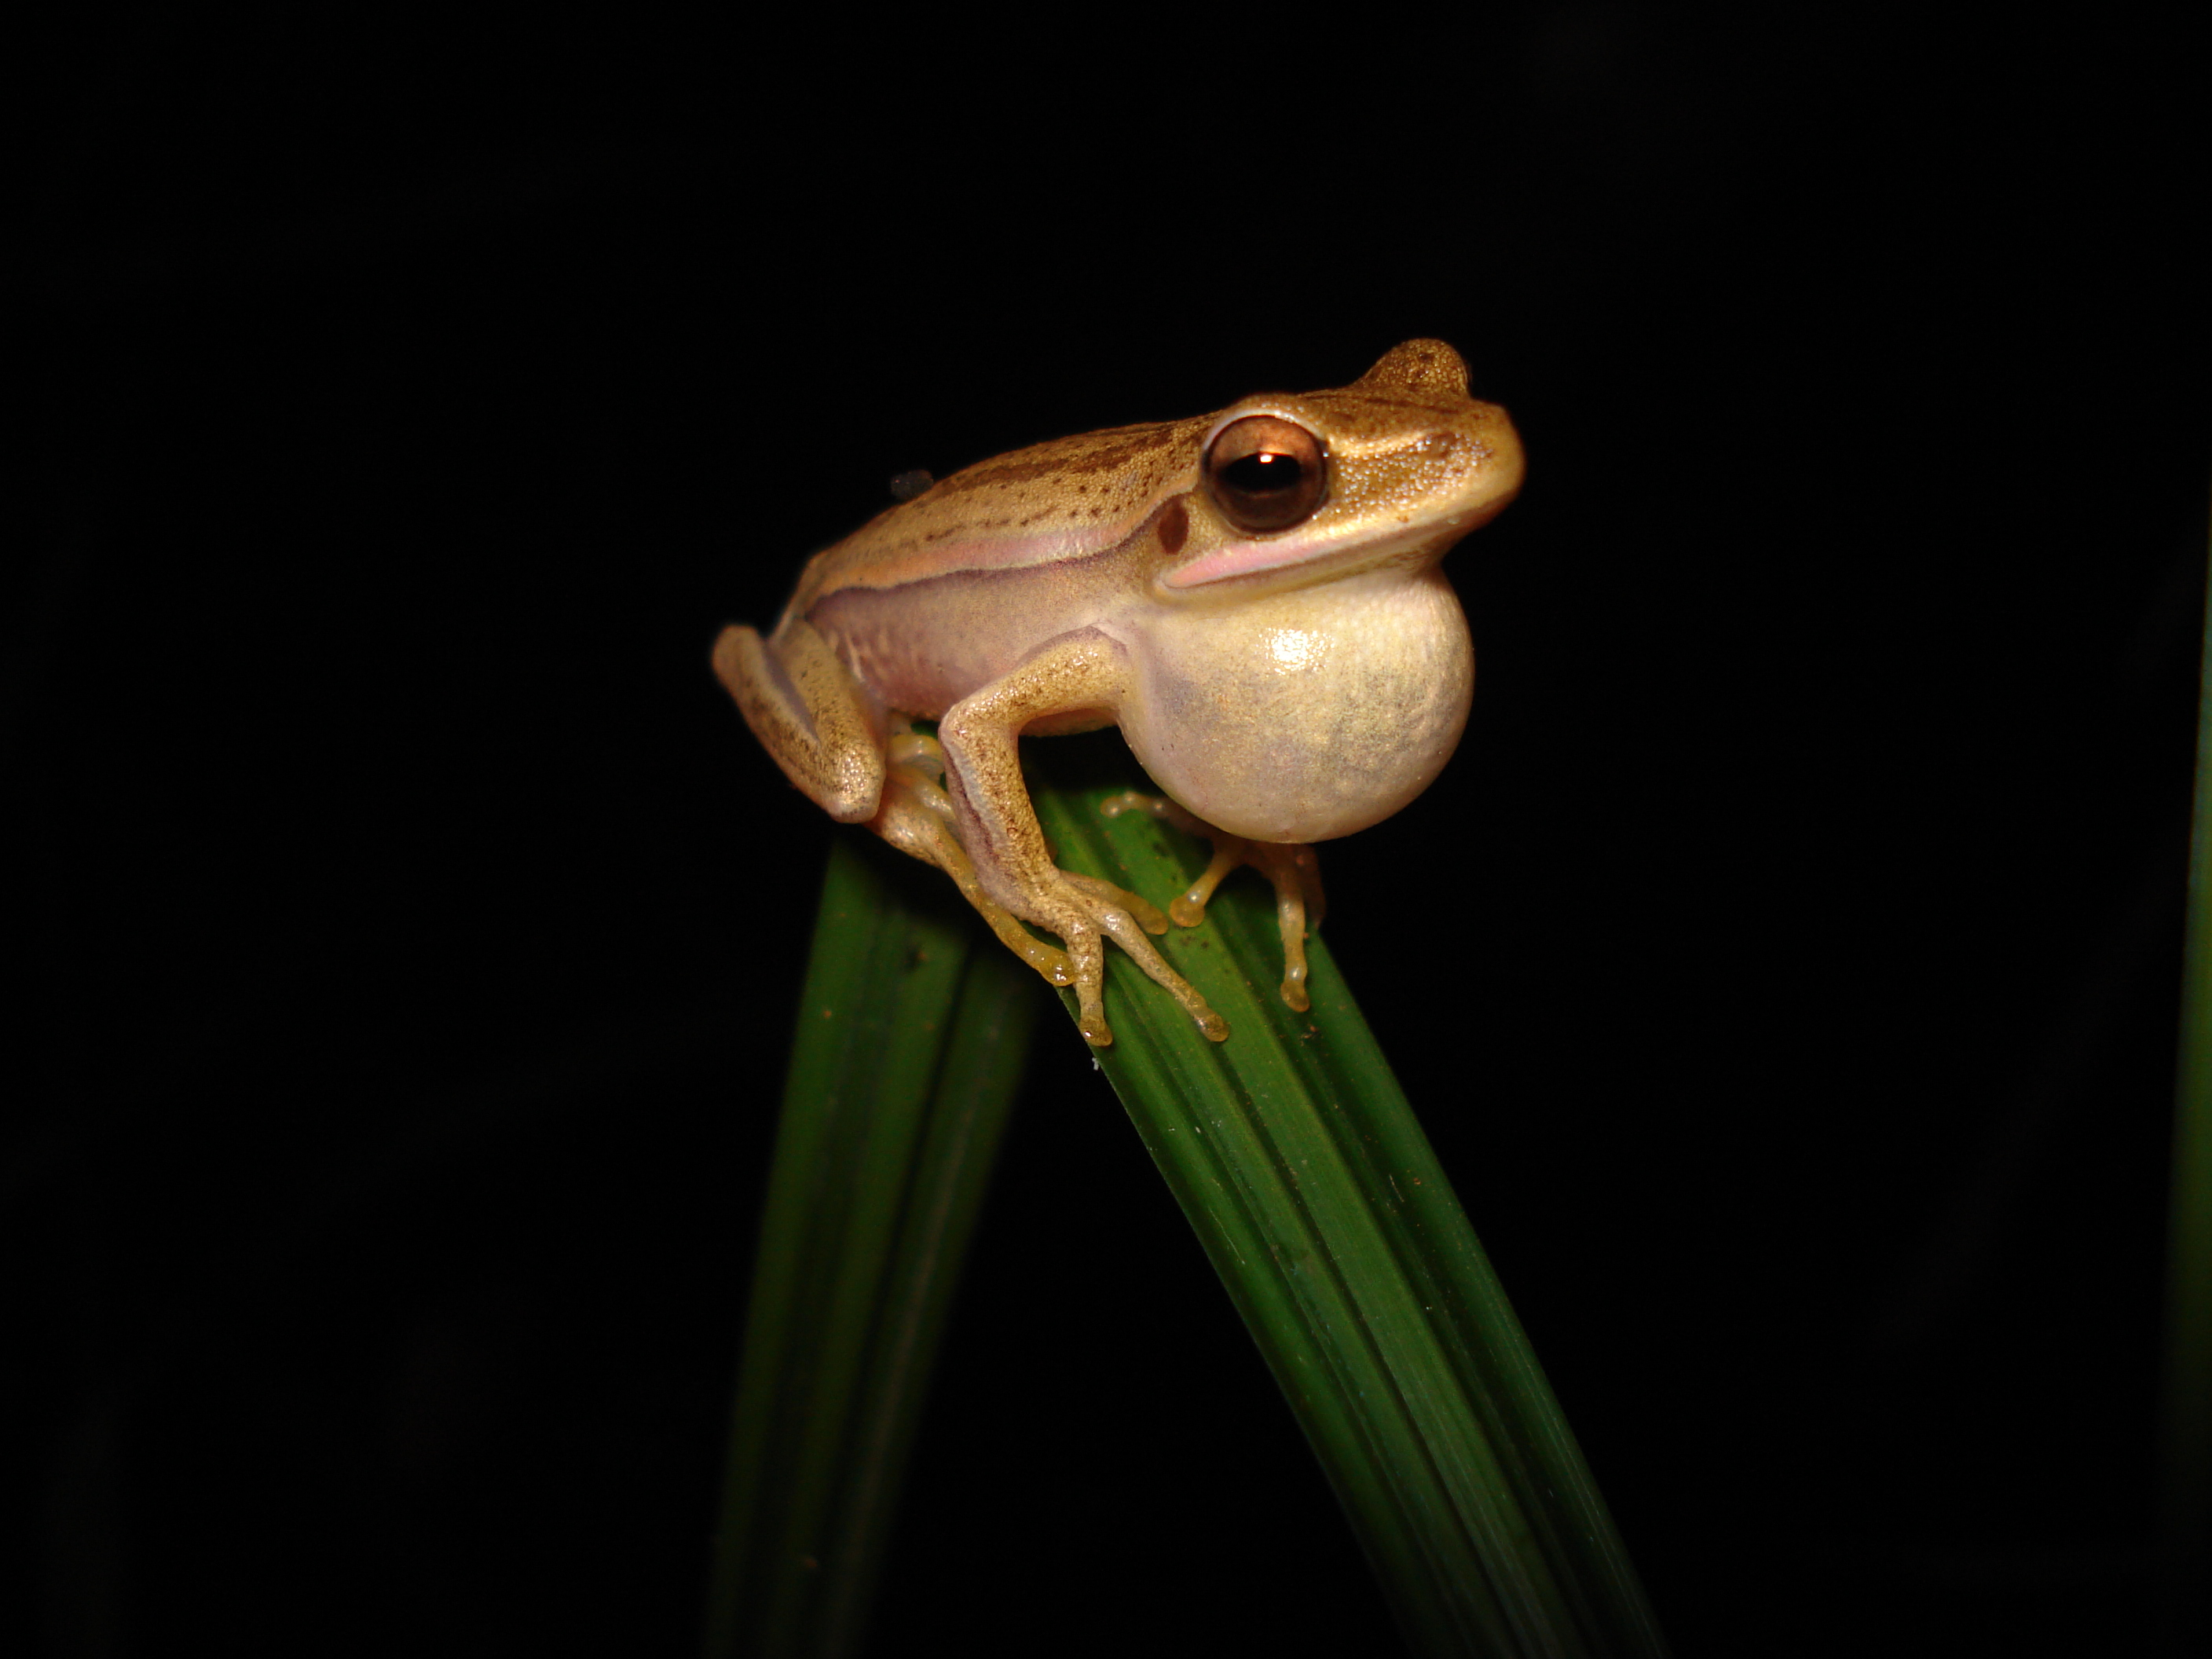 South American Golden striped tree frog trying to attract a female. Photo: D. Correa